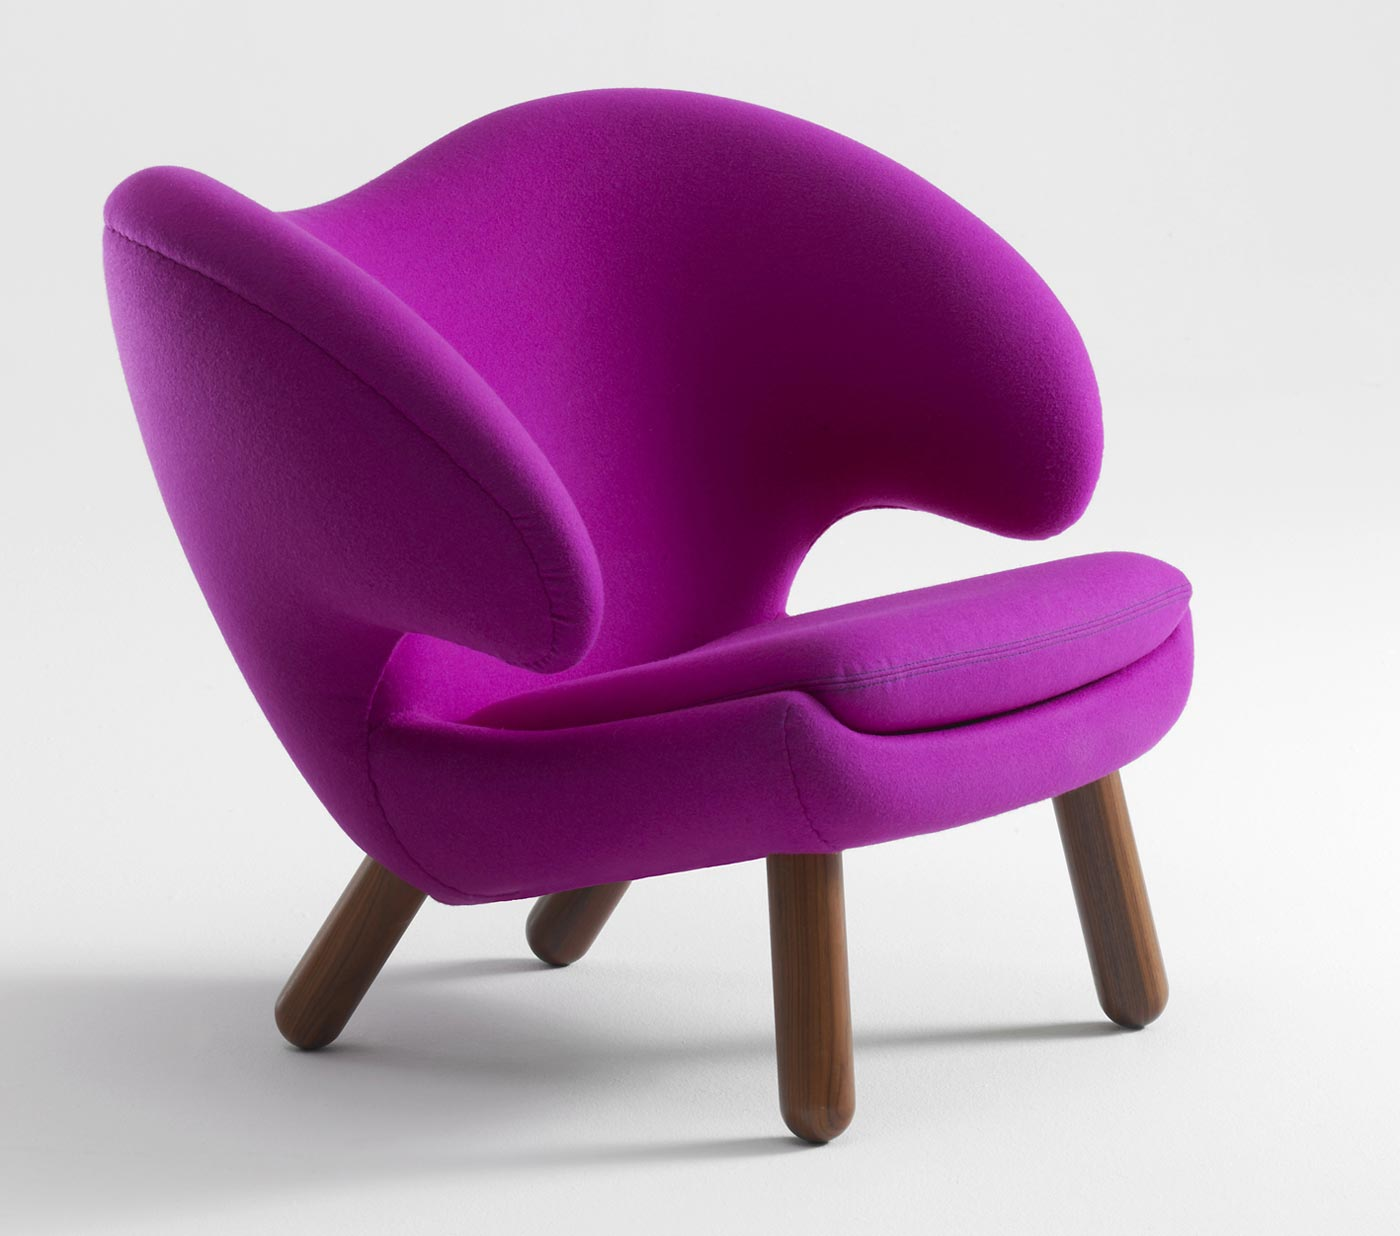 Modern Furniture Chairs: Modern Purple Upholstered Chair